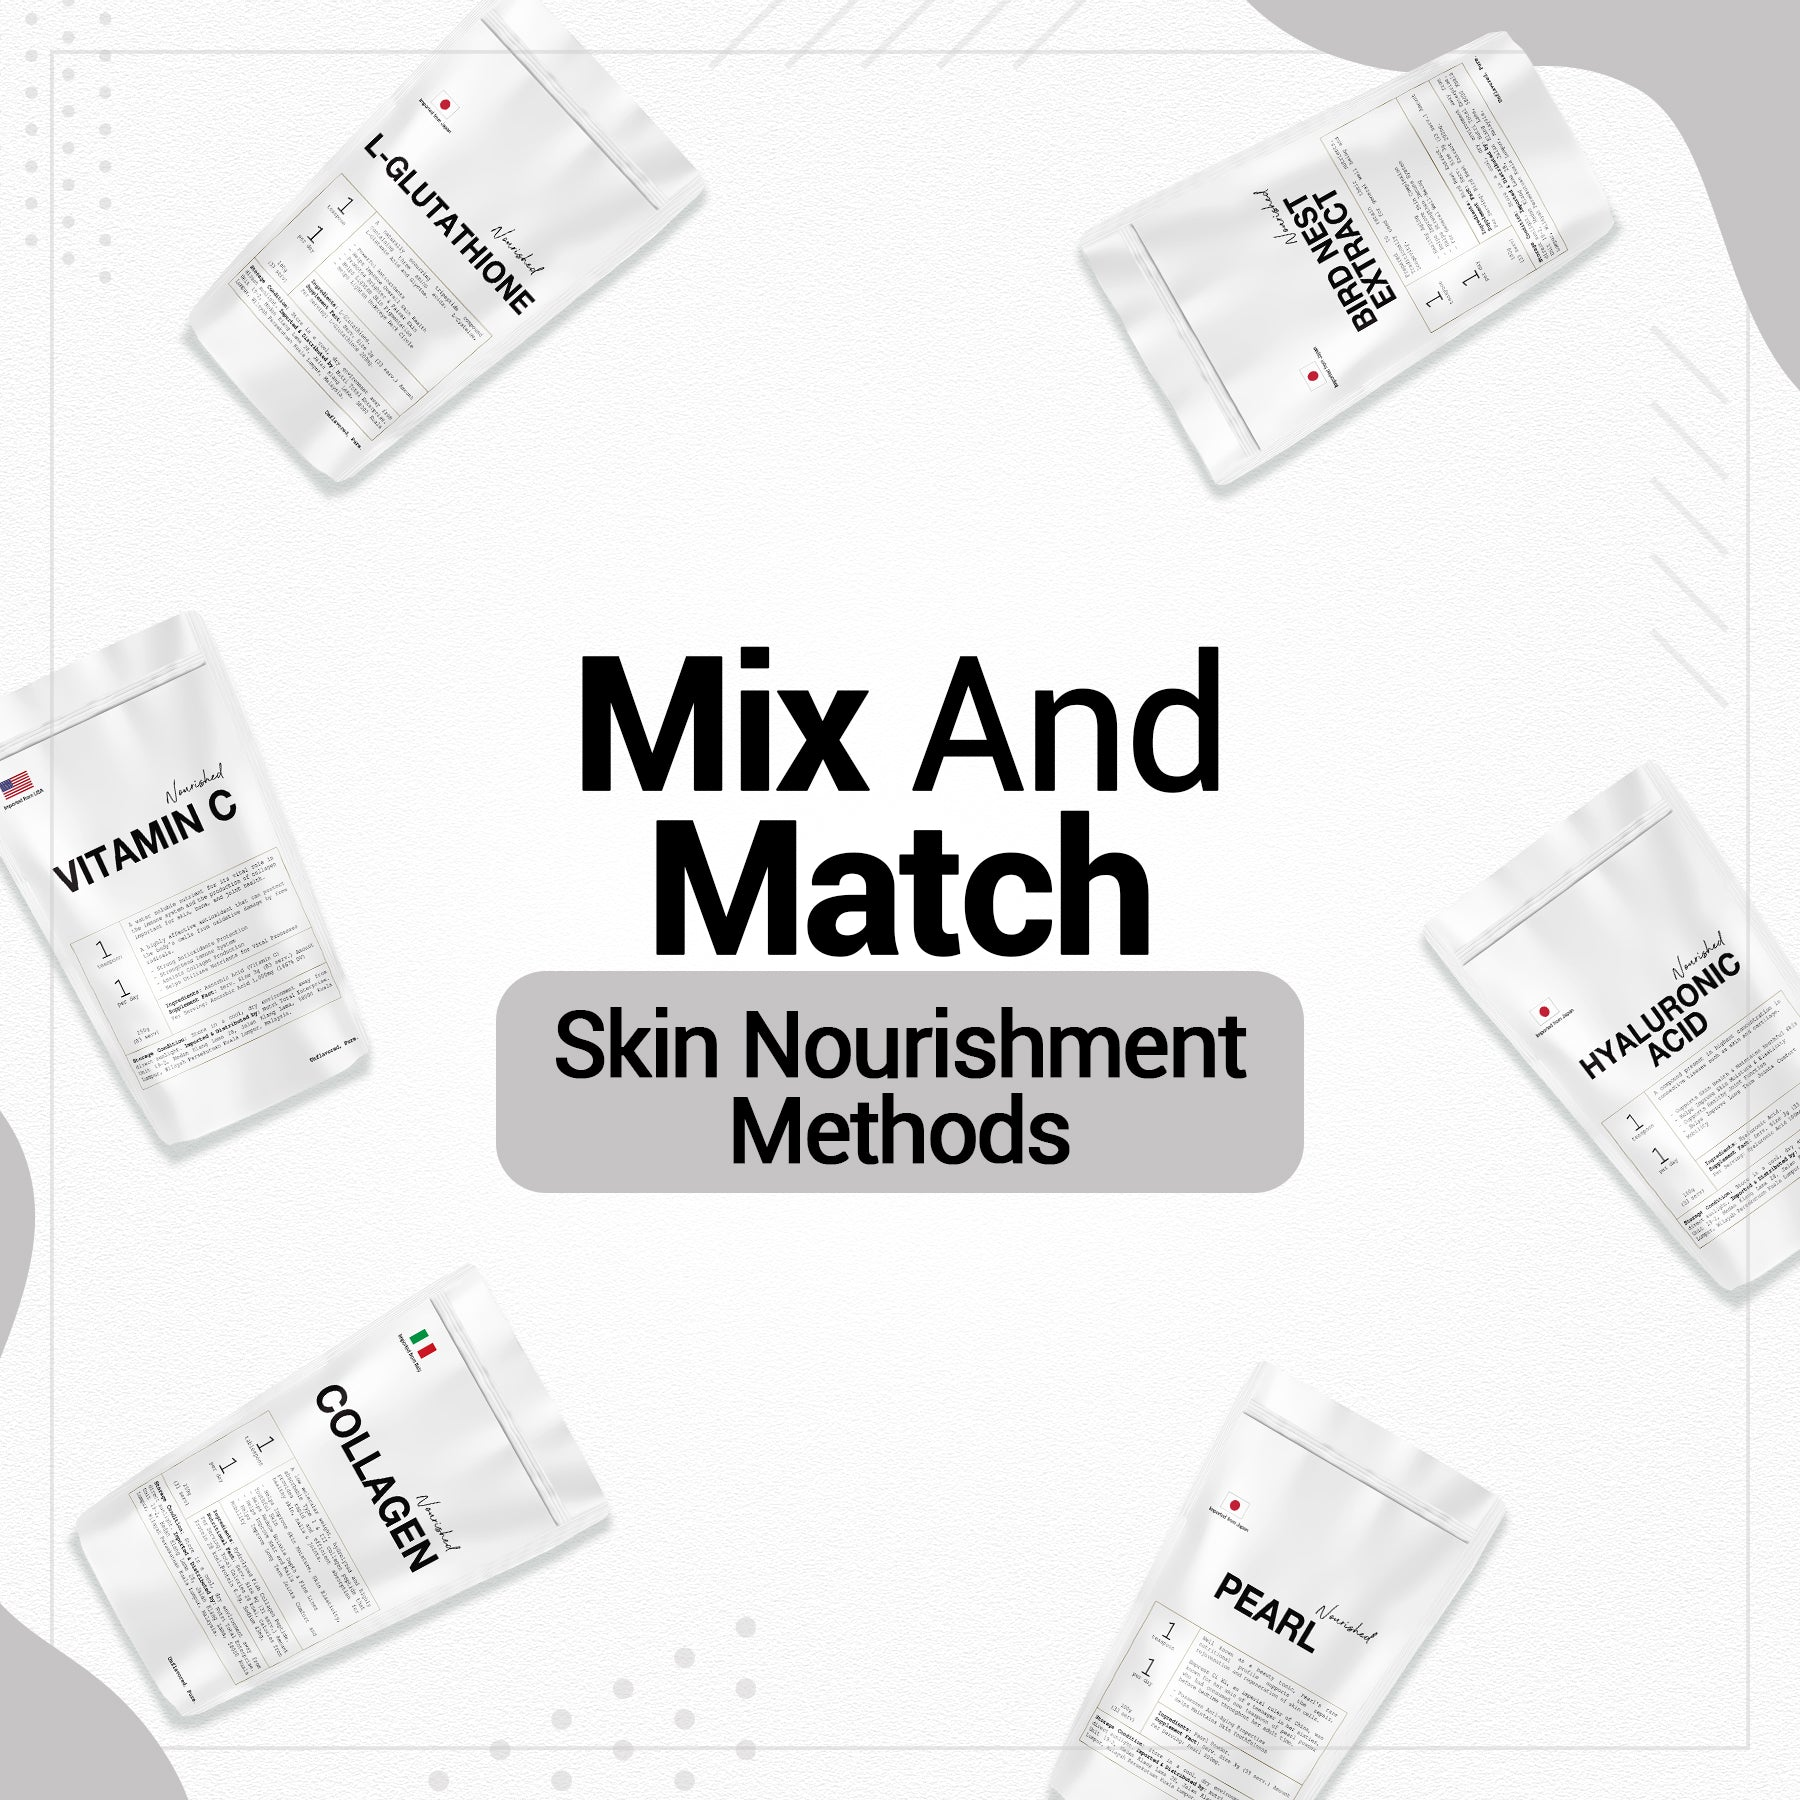 4 Mix And Match Skin Nourishment Methods